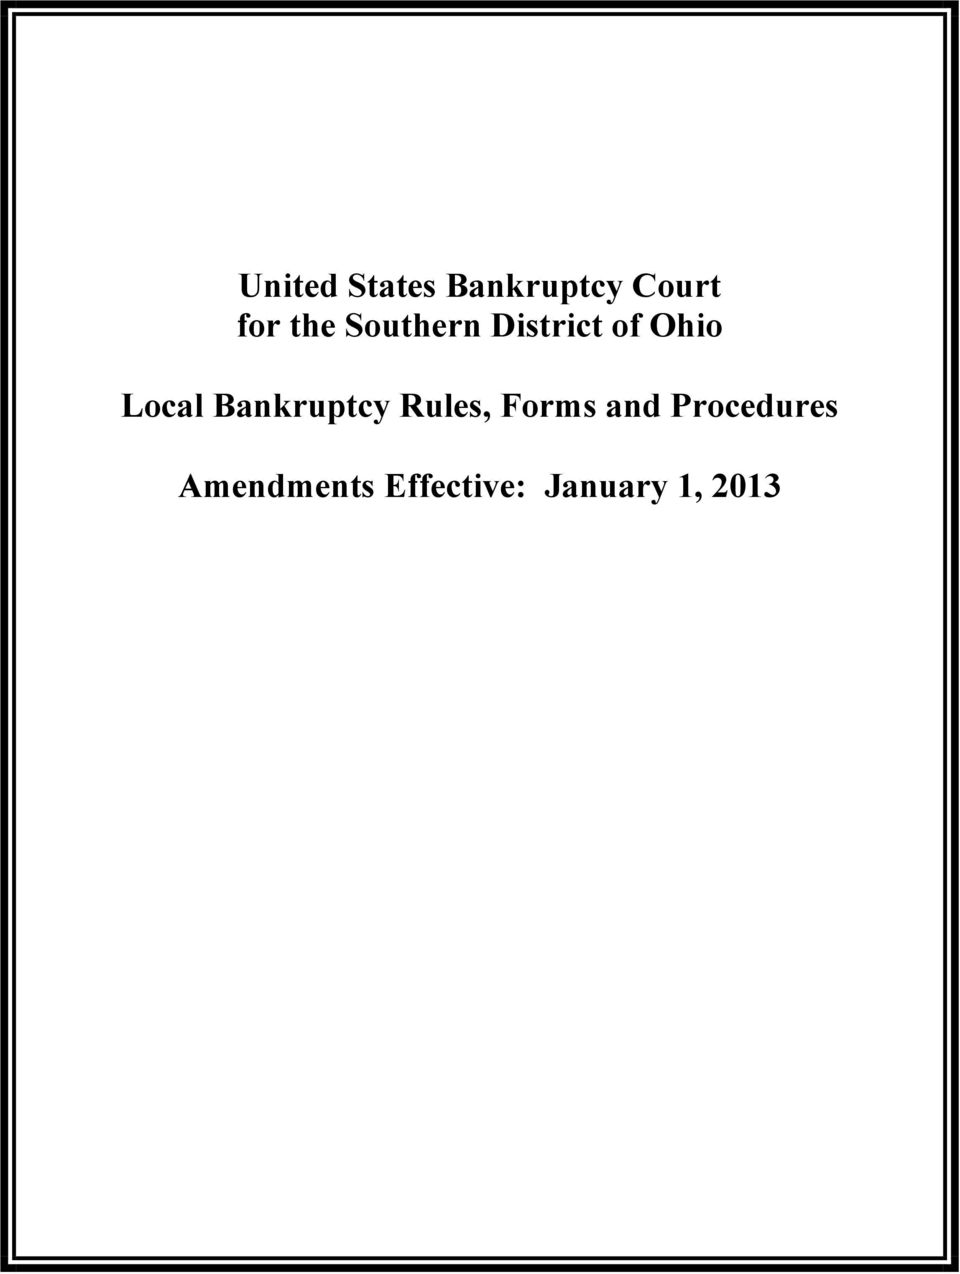 United states bankruptcy court for the southern district of ohio bankruptcy rules forms and altavistaventures Image collections